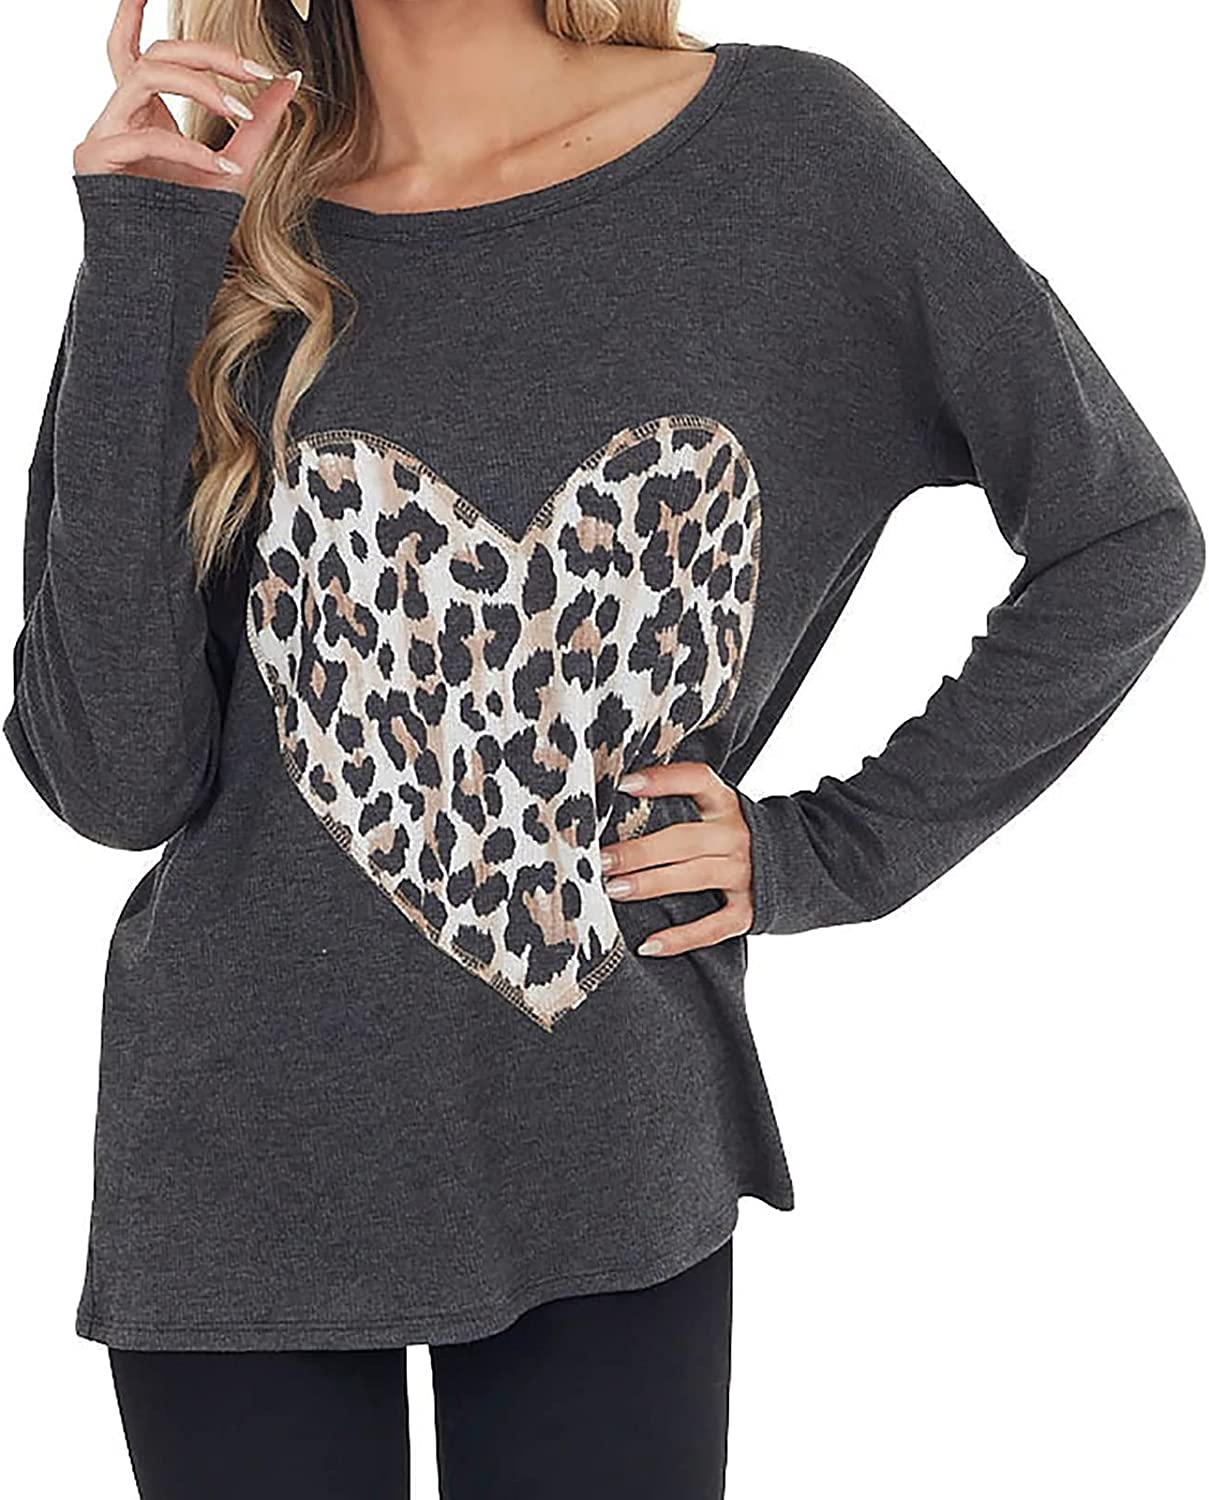 Women's Long Sleeve Round Neck Blouse Tops Love Heart Leopard Print Shirts Casual Loose Tunic Tops Tops